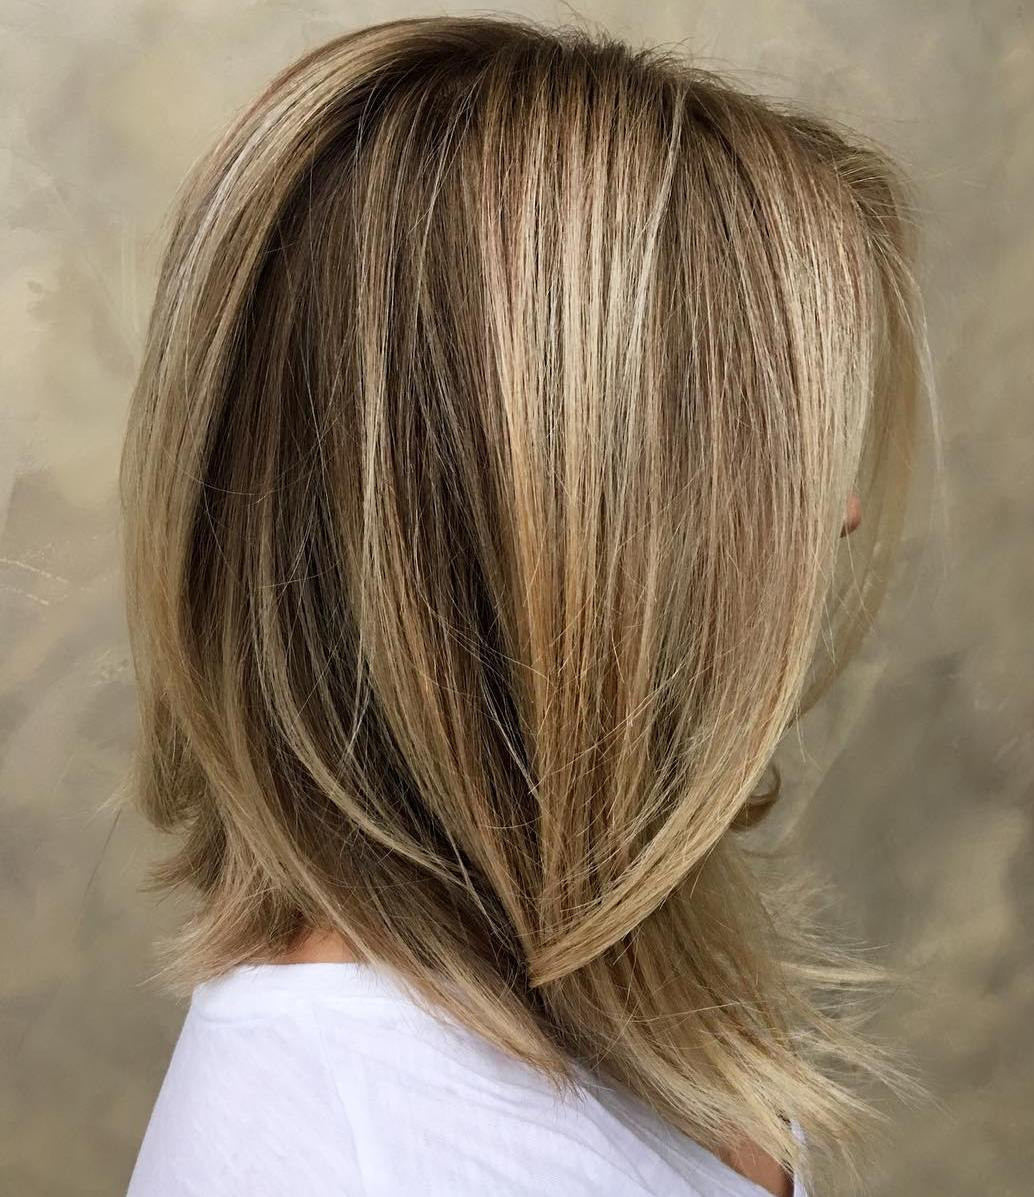 Best ideas about Photos Of Bob Haircuts . Save or Pin 60 Inspiring Long Bob Hairstyles and Long Bob Haircuts for Now.